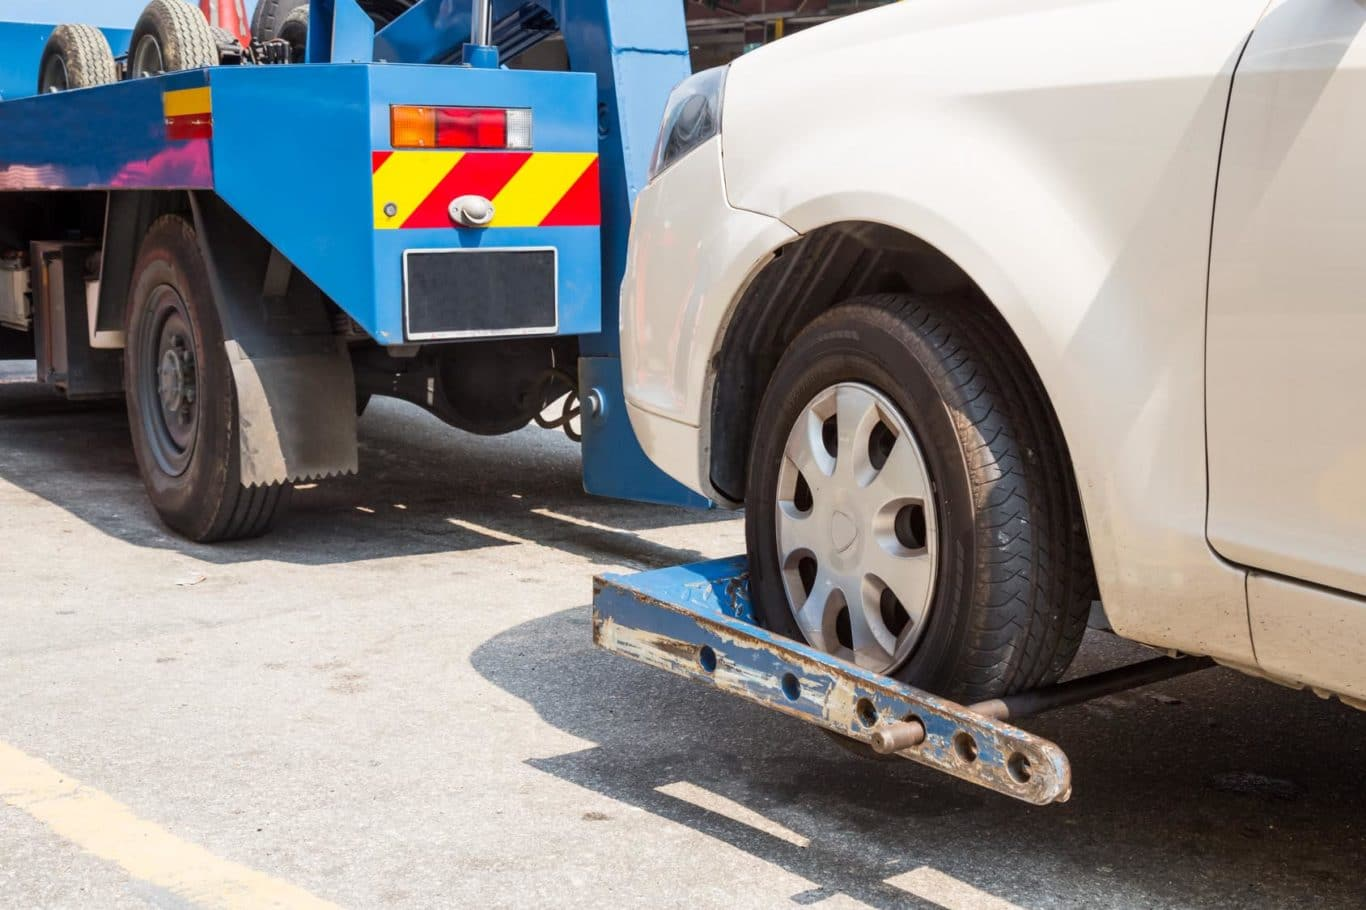 Arklow expert Car Towing services